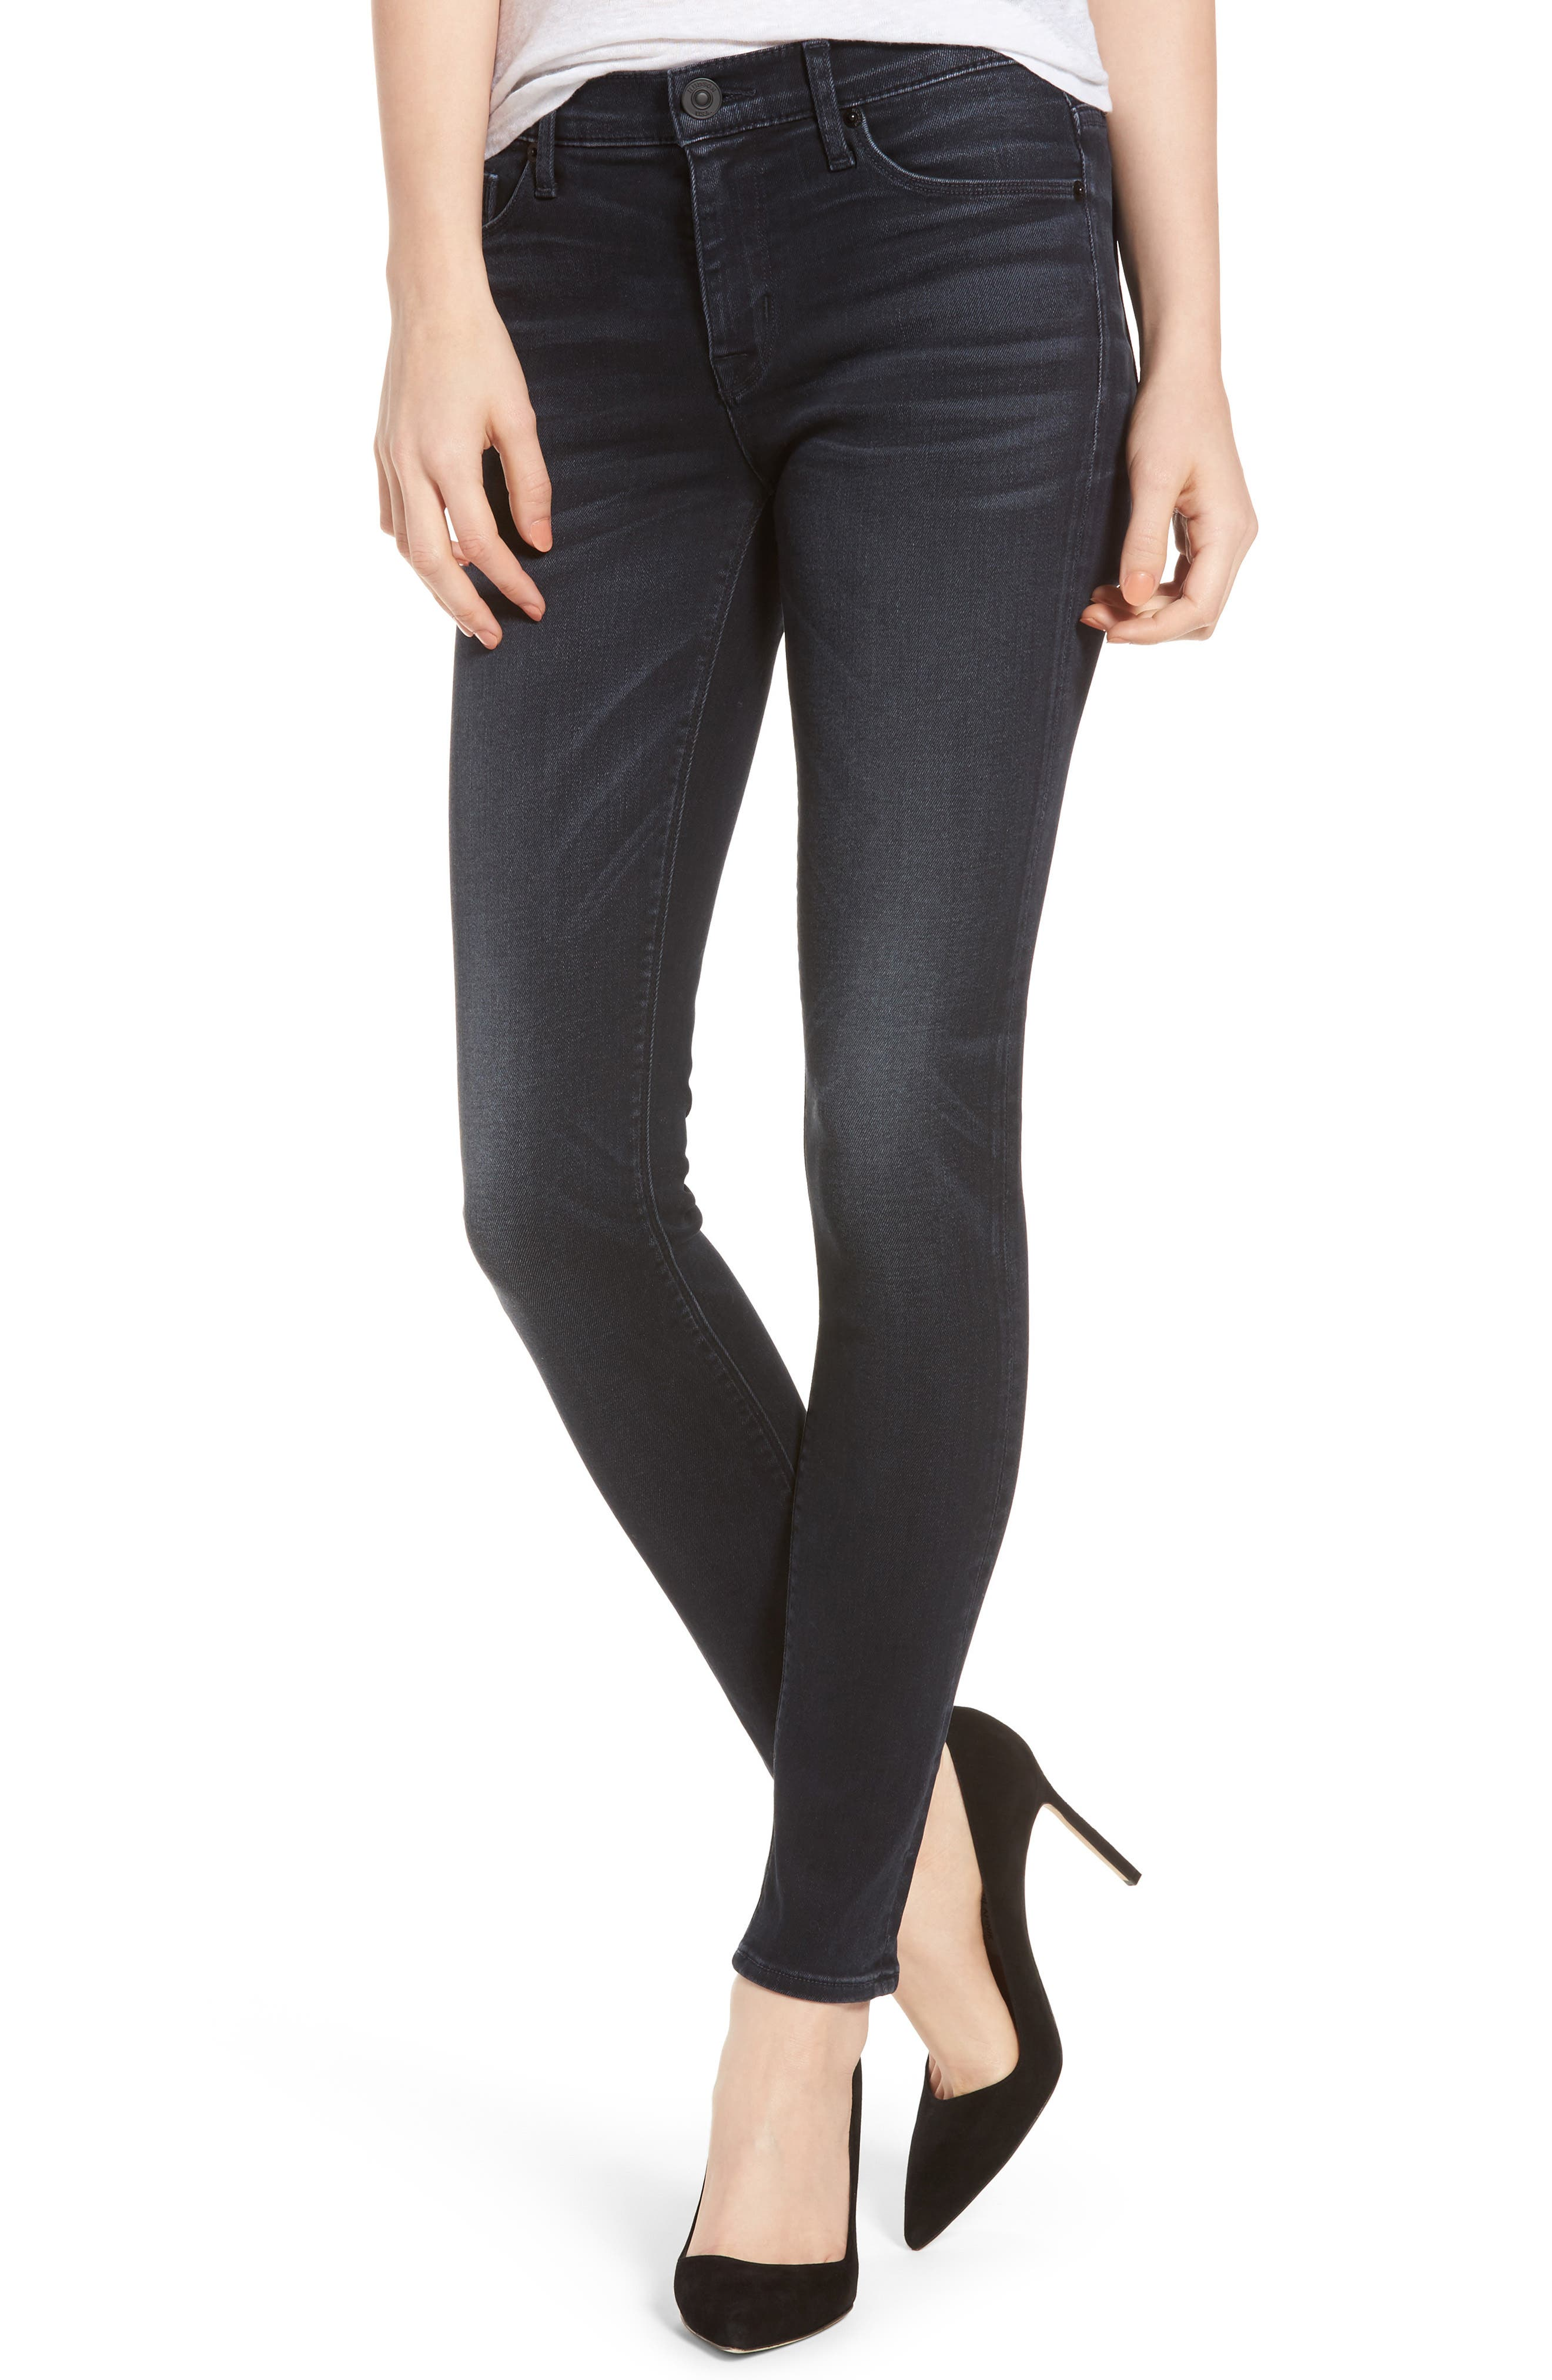 Nico Super Skinny Jeans,                             Main thumbnail 1, color,                             Soft Shock